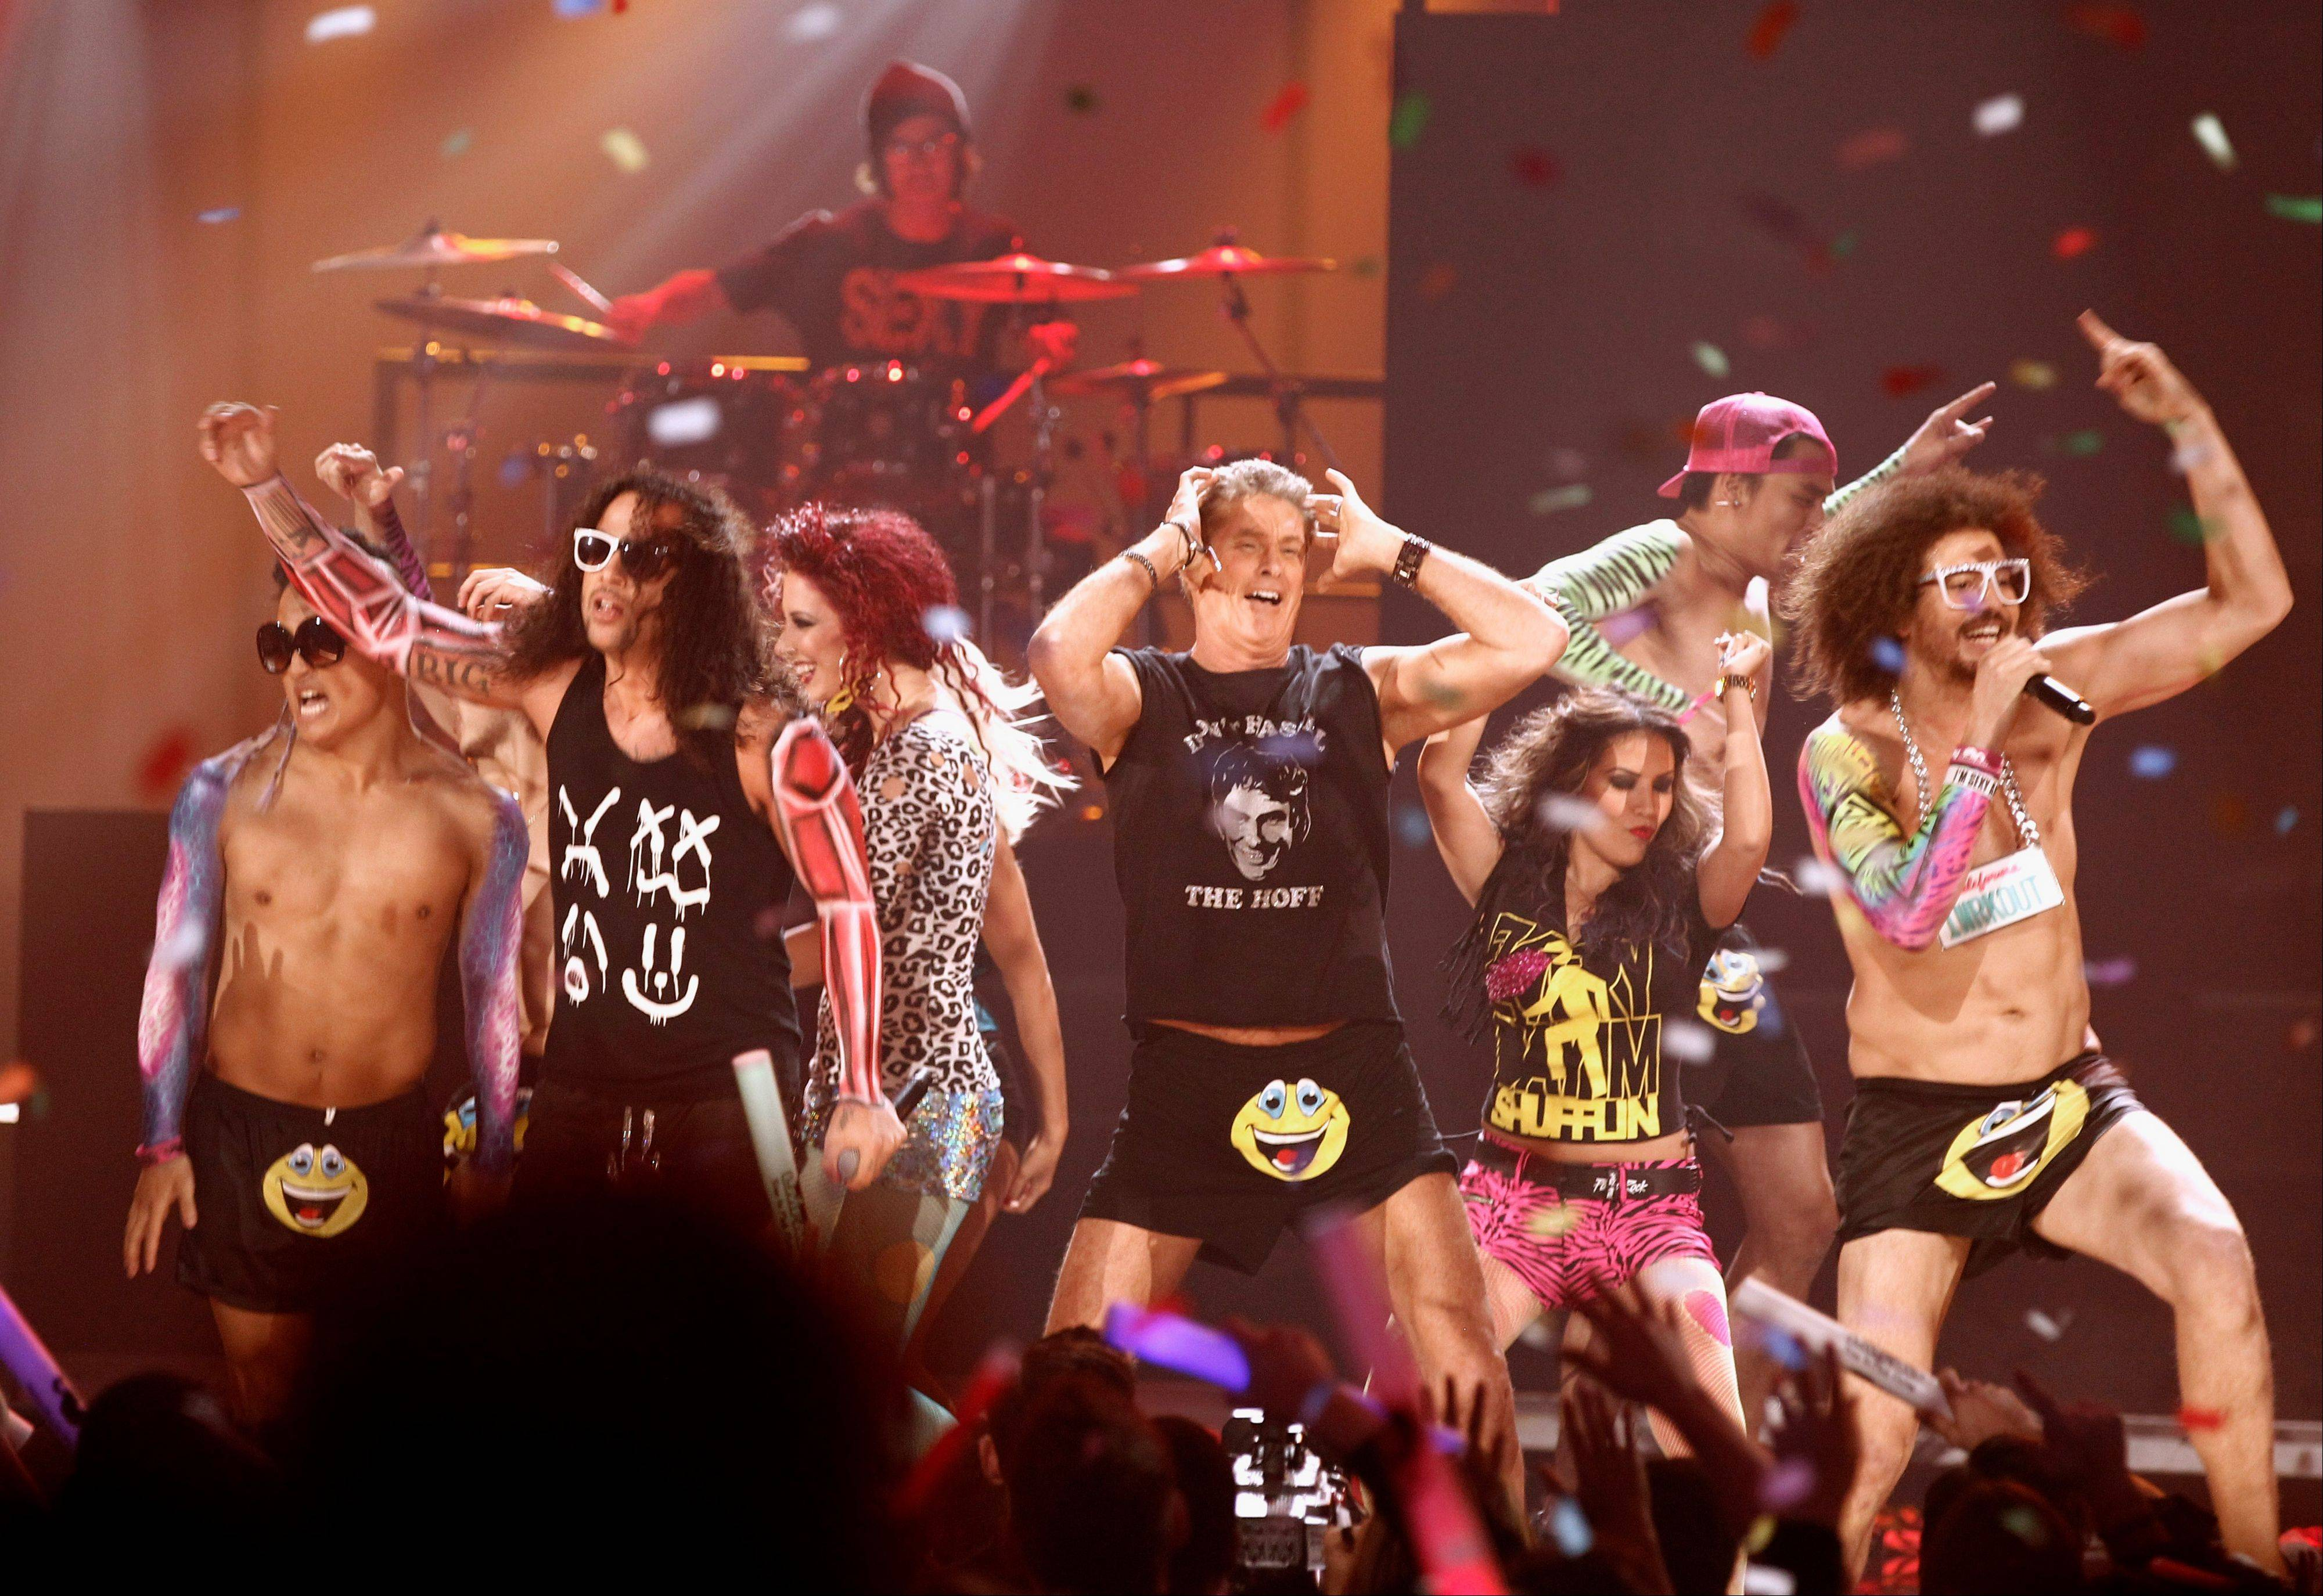 David Hasselhoff, center, dances onstage with LMFAO at the 39th Annual American Music Awards on Sunday, Nov. 20, 2011 in Los Angeles.